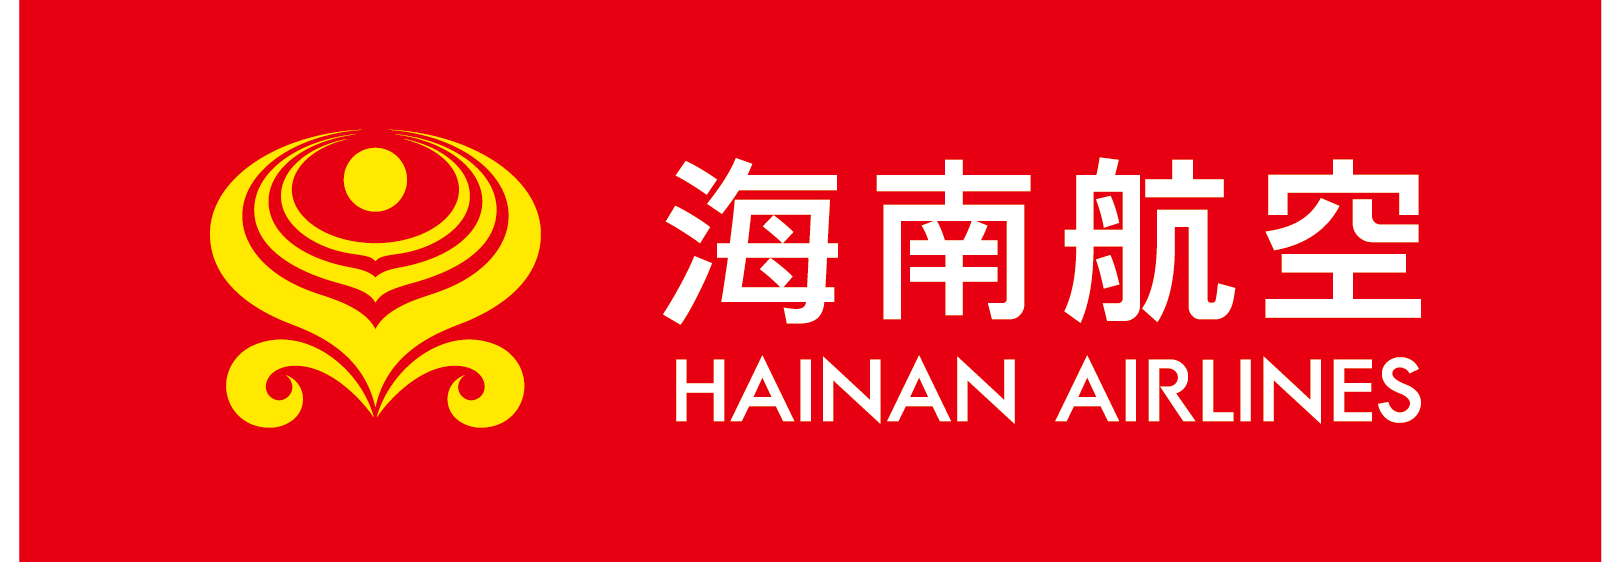 Hainan Airlines English and Chines e logo banner海南航空标准logo中文-红底横板 copy.png